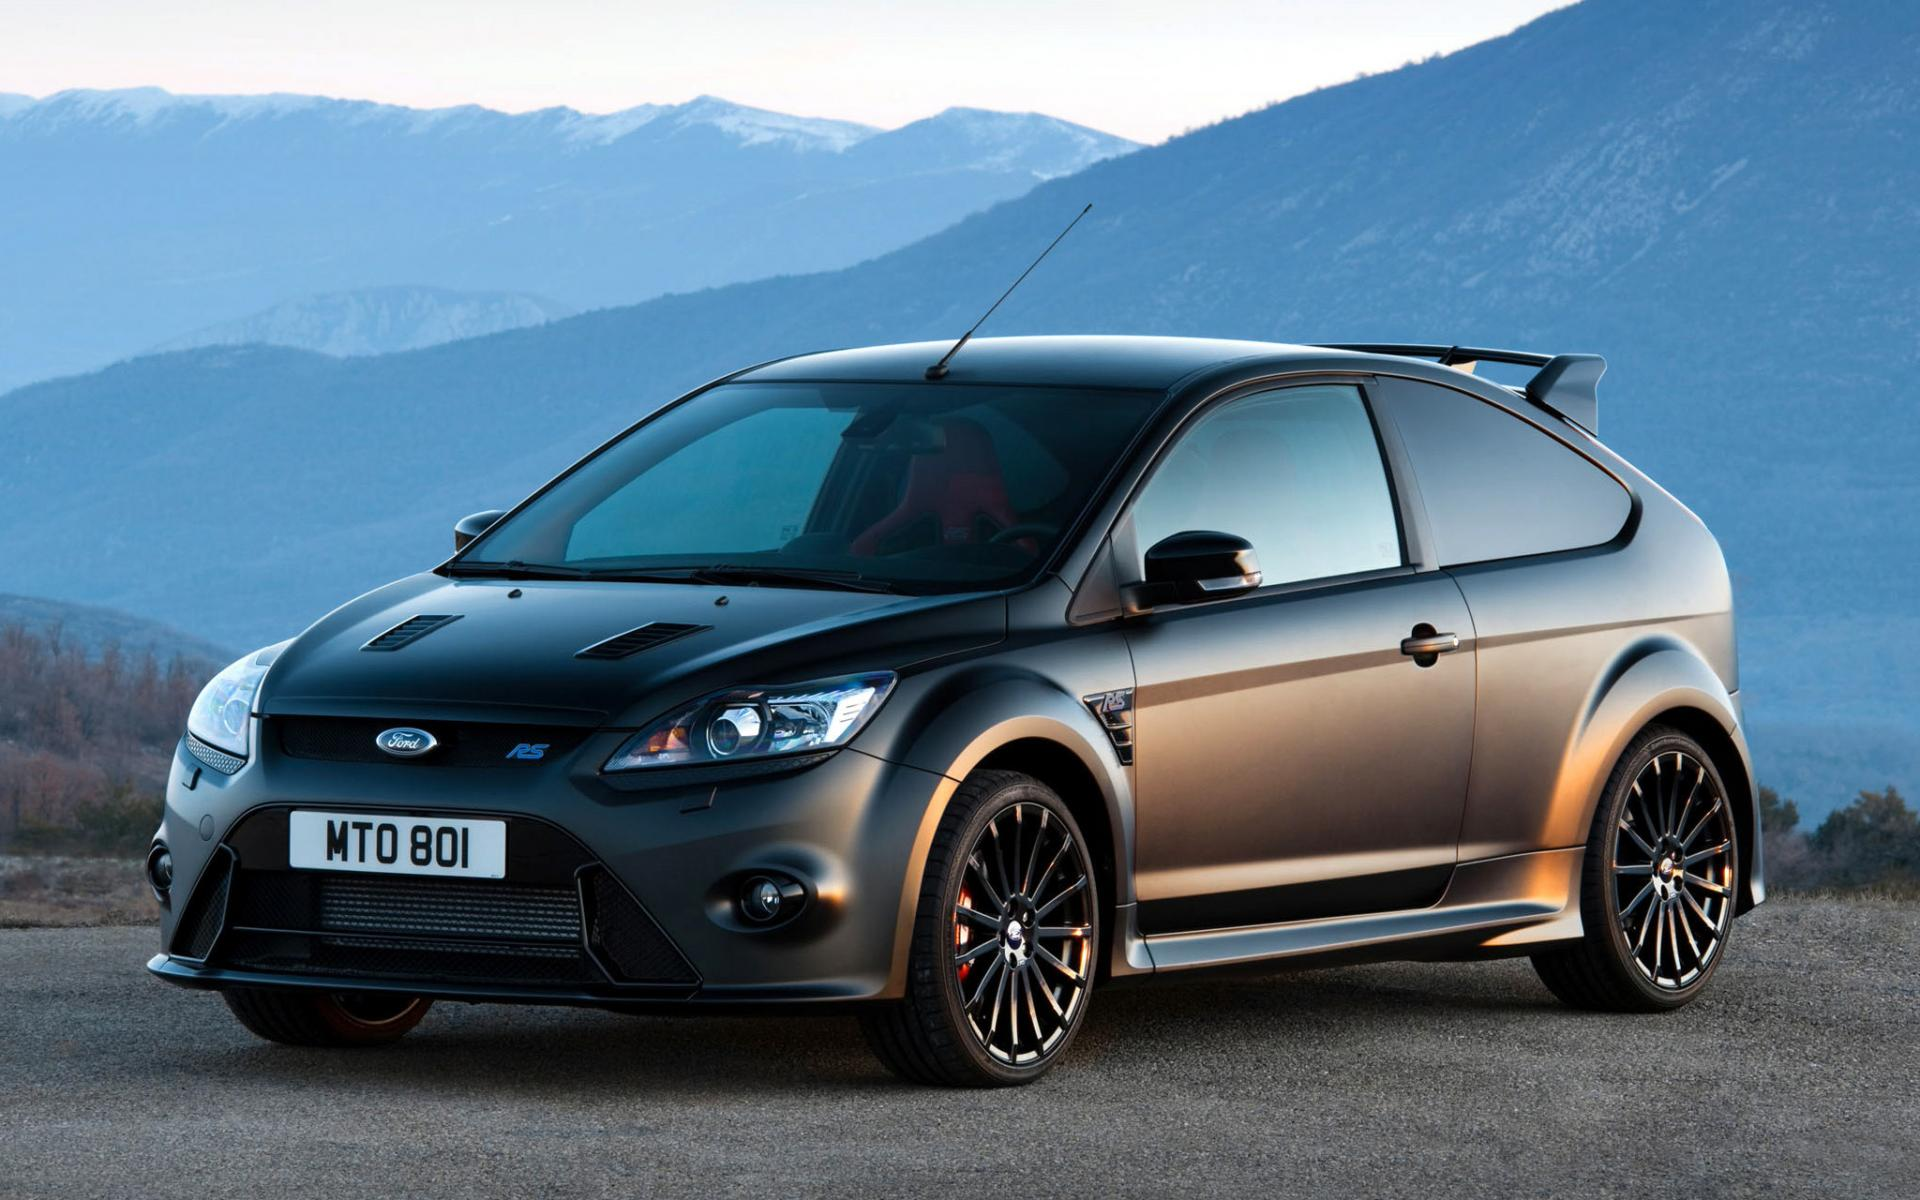 Ford Fiesta RS Black wallpaper downloads High resolution images 1920x1200